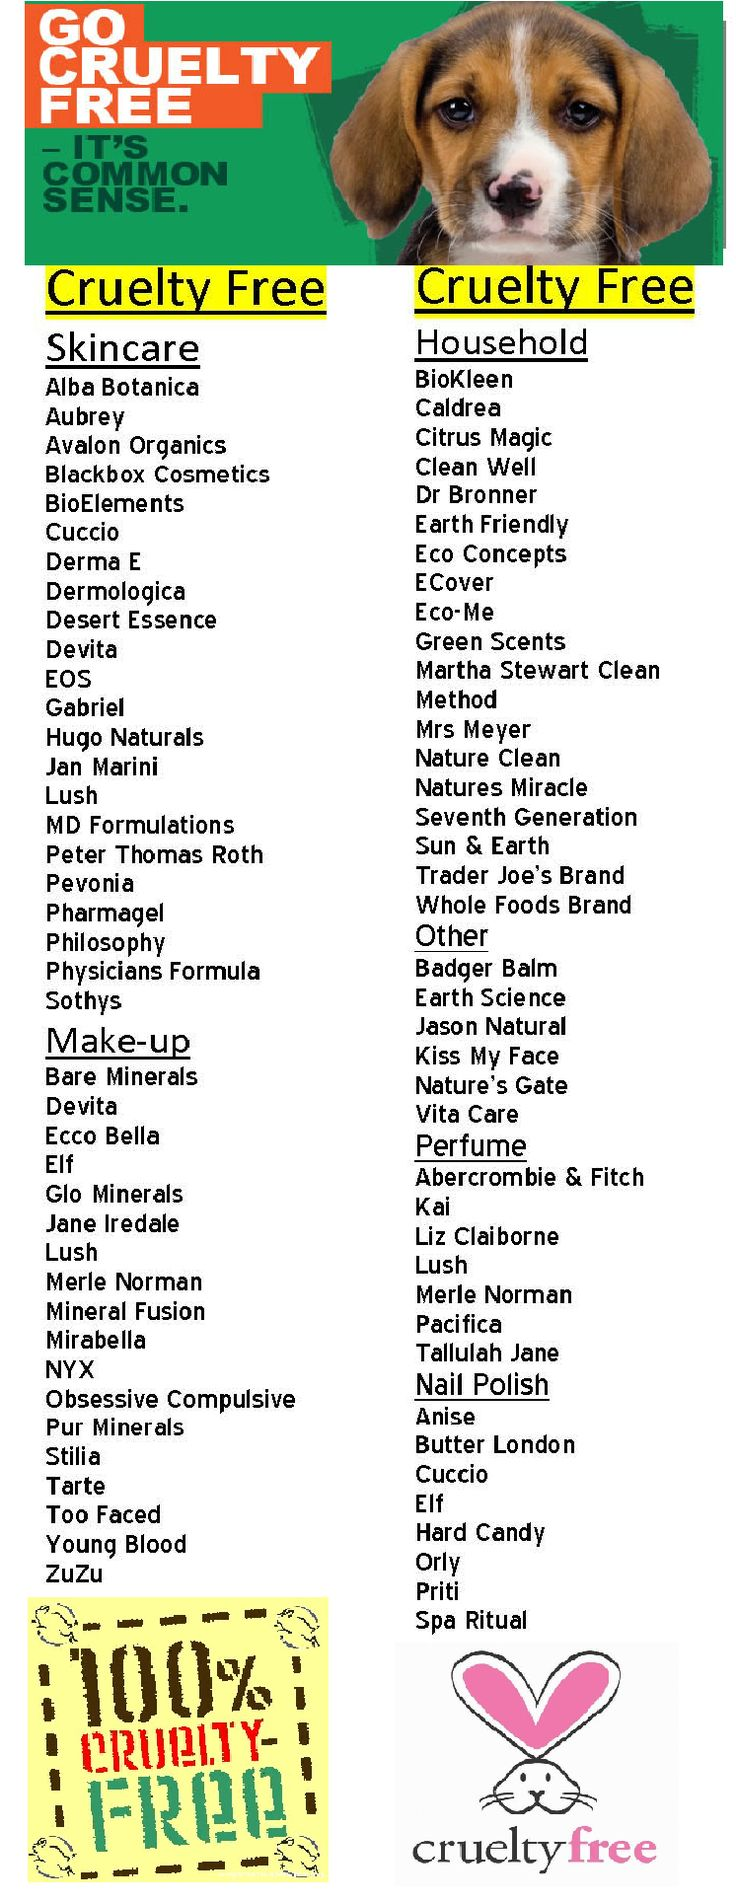 Support cruelty free companies and their products. CHECK PETA's website for which companies are CURRENTLY cruelty-free.